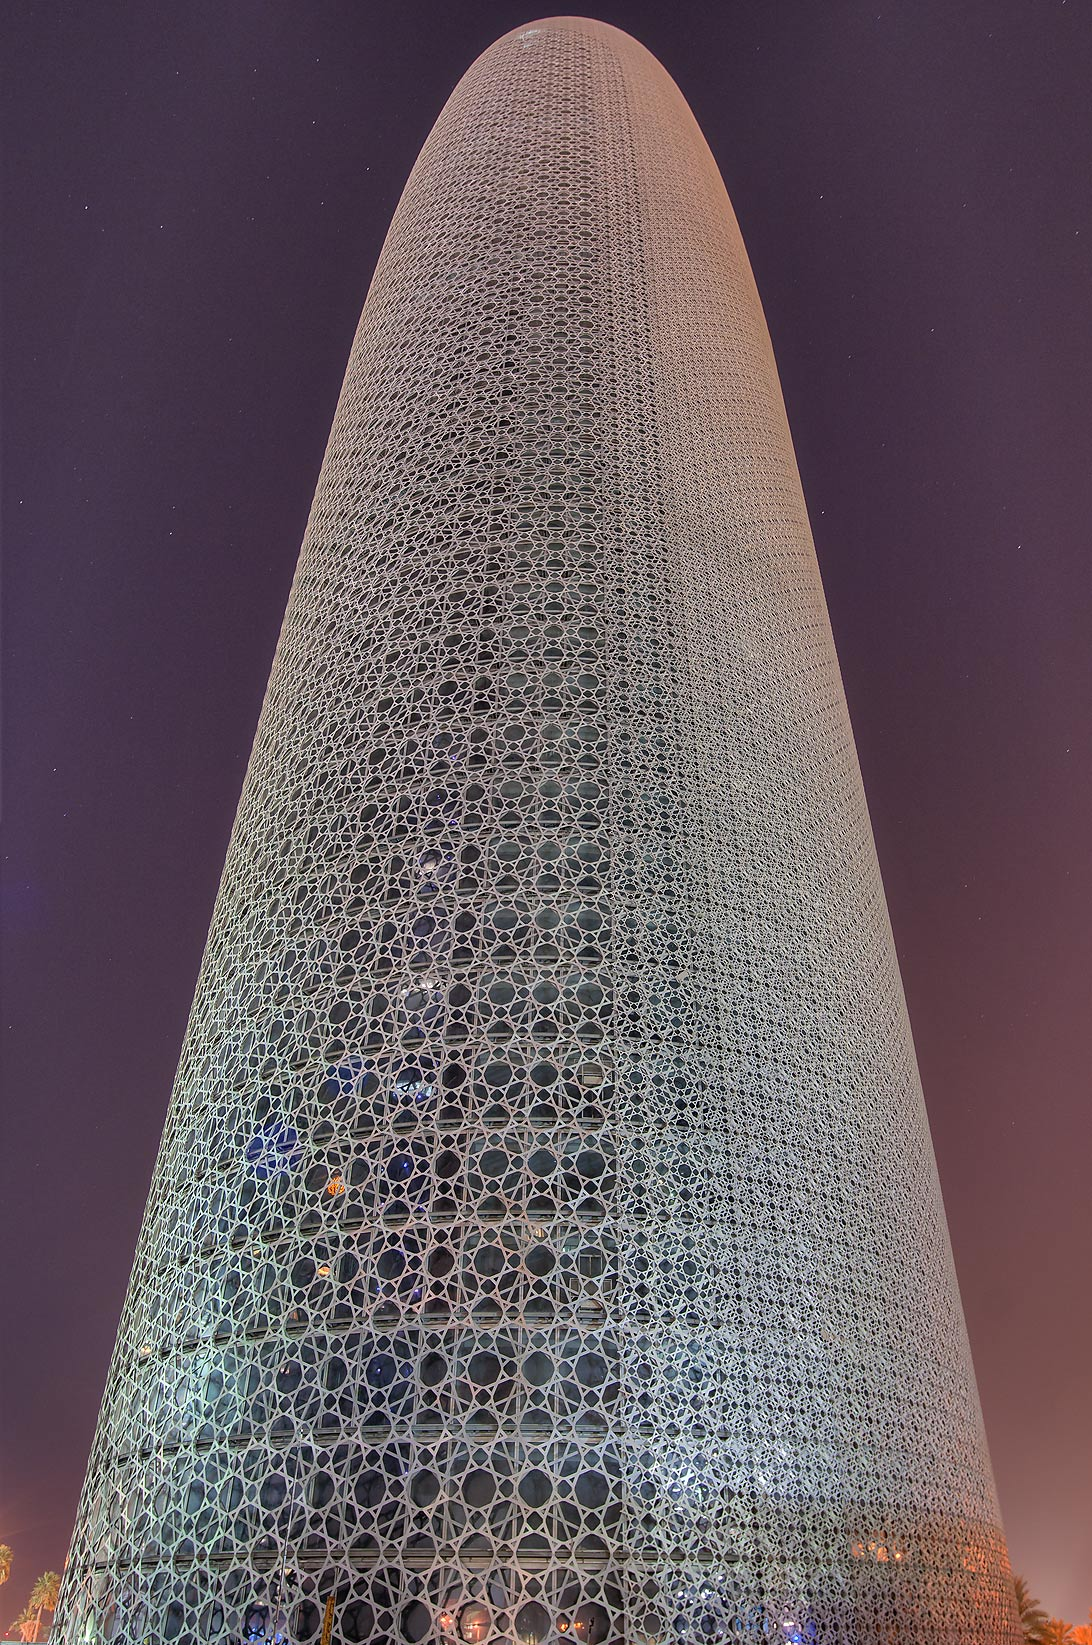 Burj Qatar Tower in West Bay at early morning. Doha, Qatar